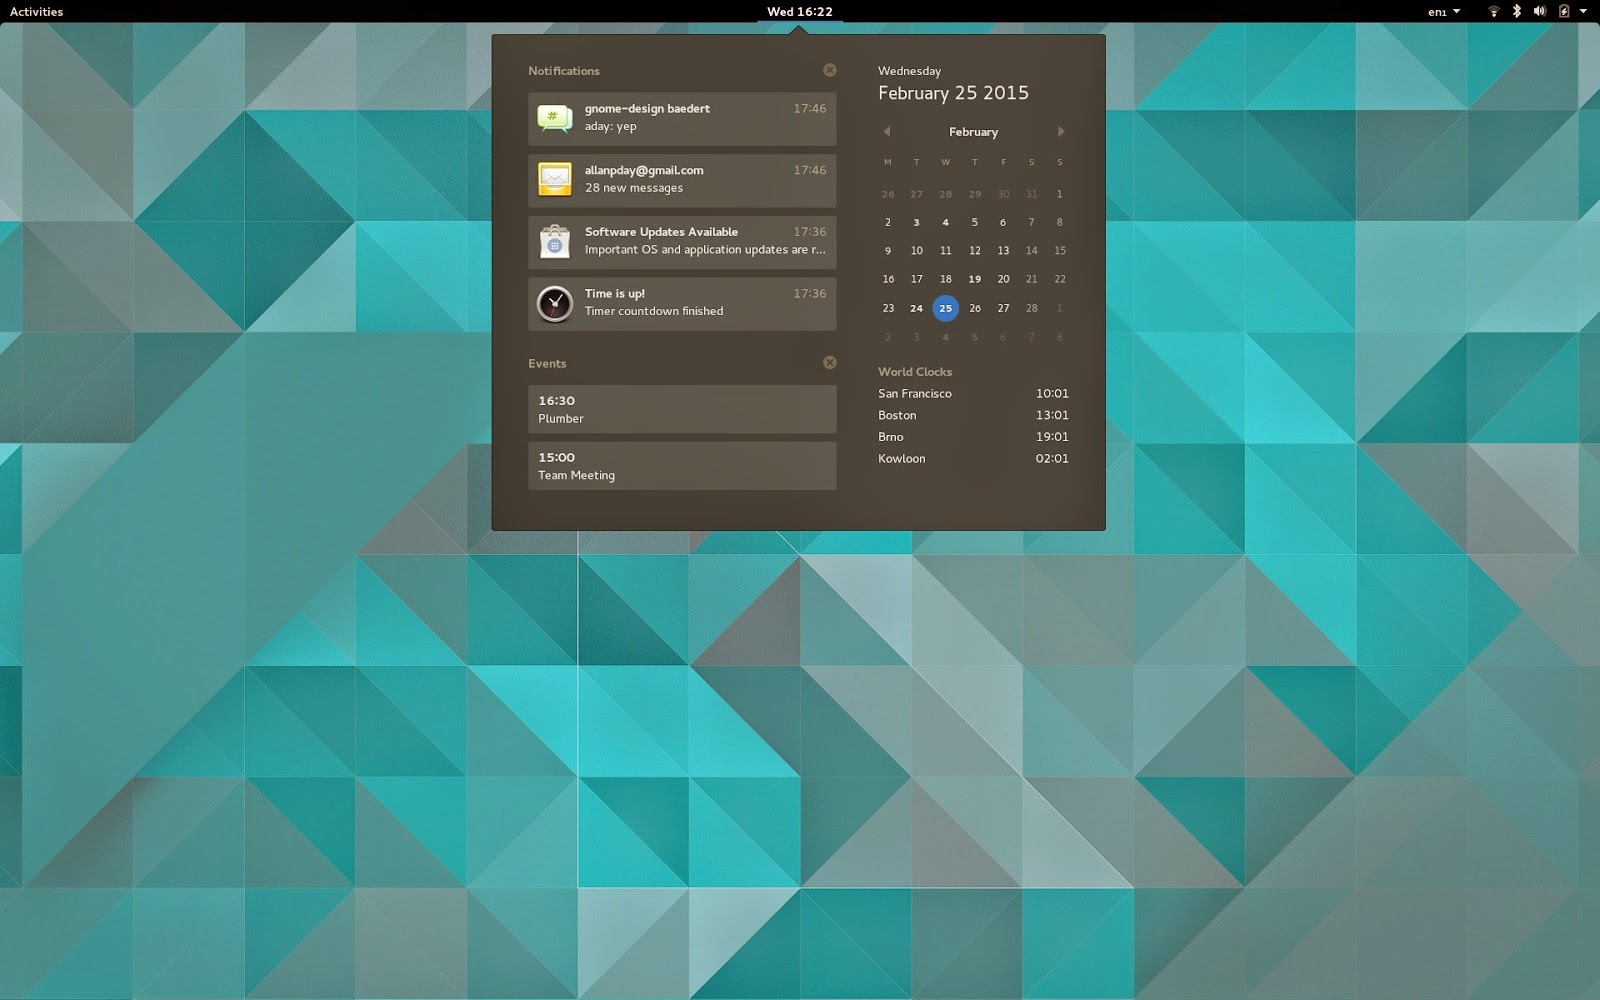 GNOME 3 16 Beta 2 Out Now, Users Can Test It via Fedora 22